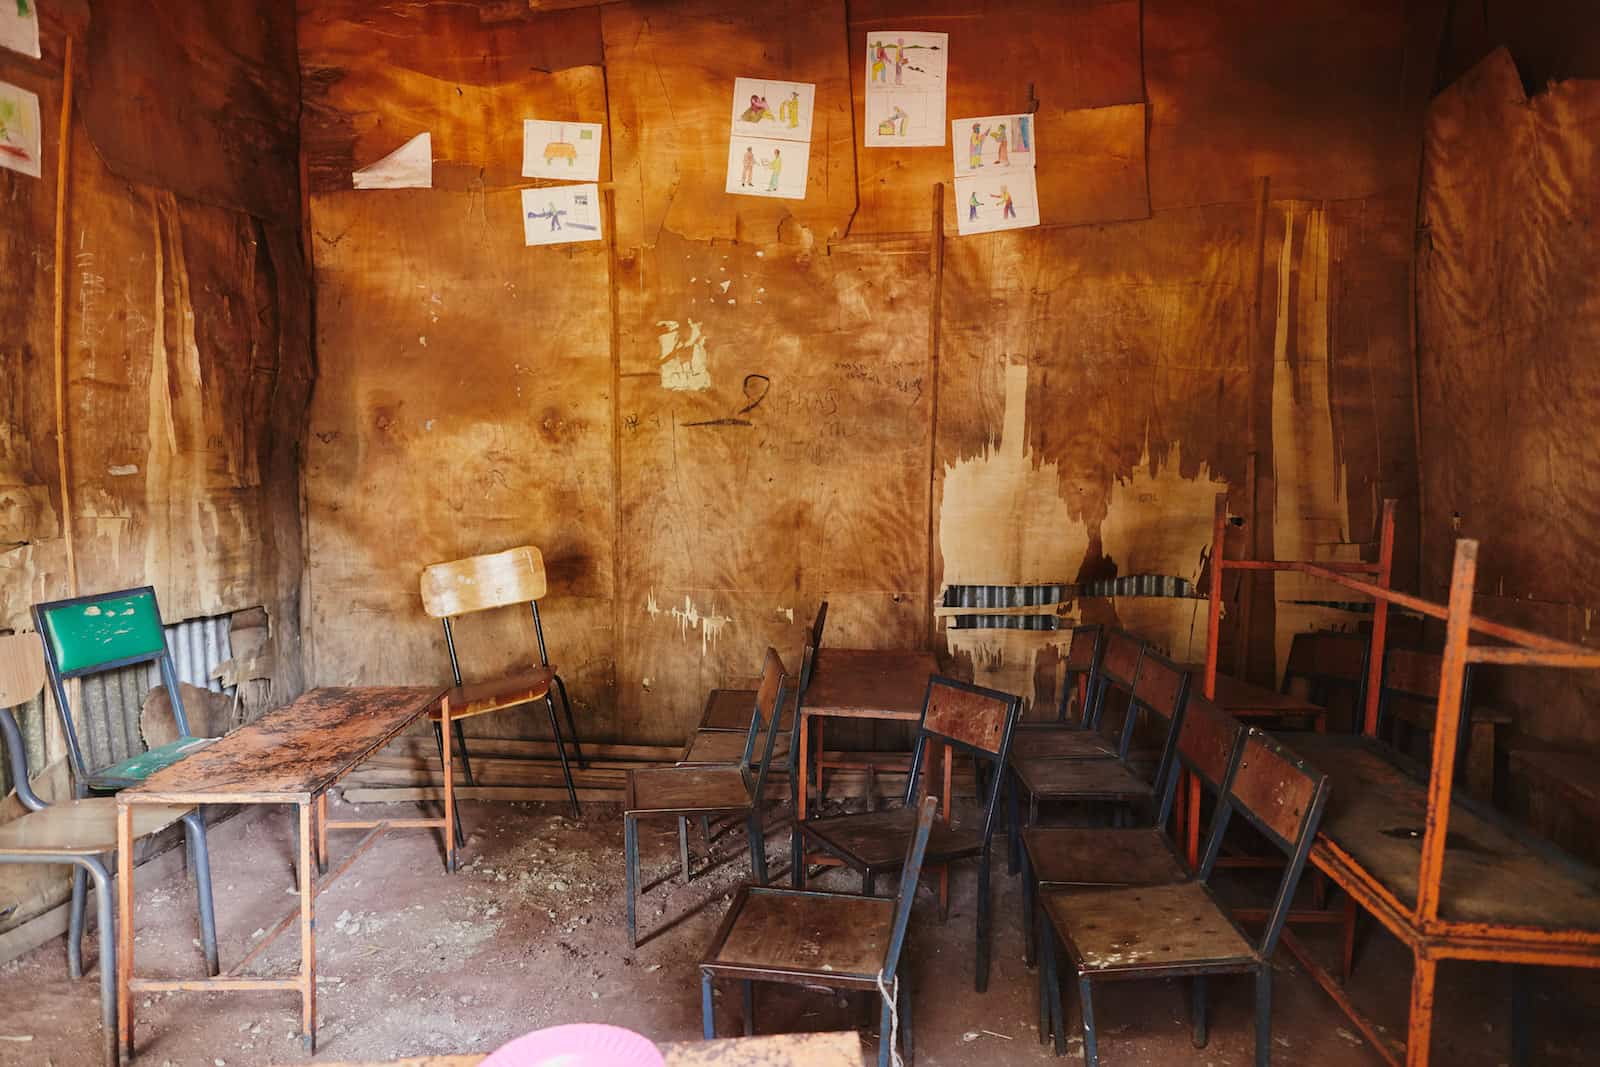 A classroom with dirt floors, plywood walls and cramped chairs.